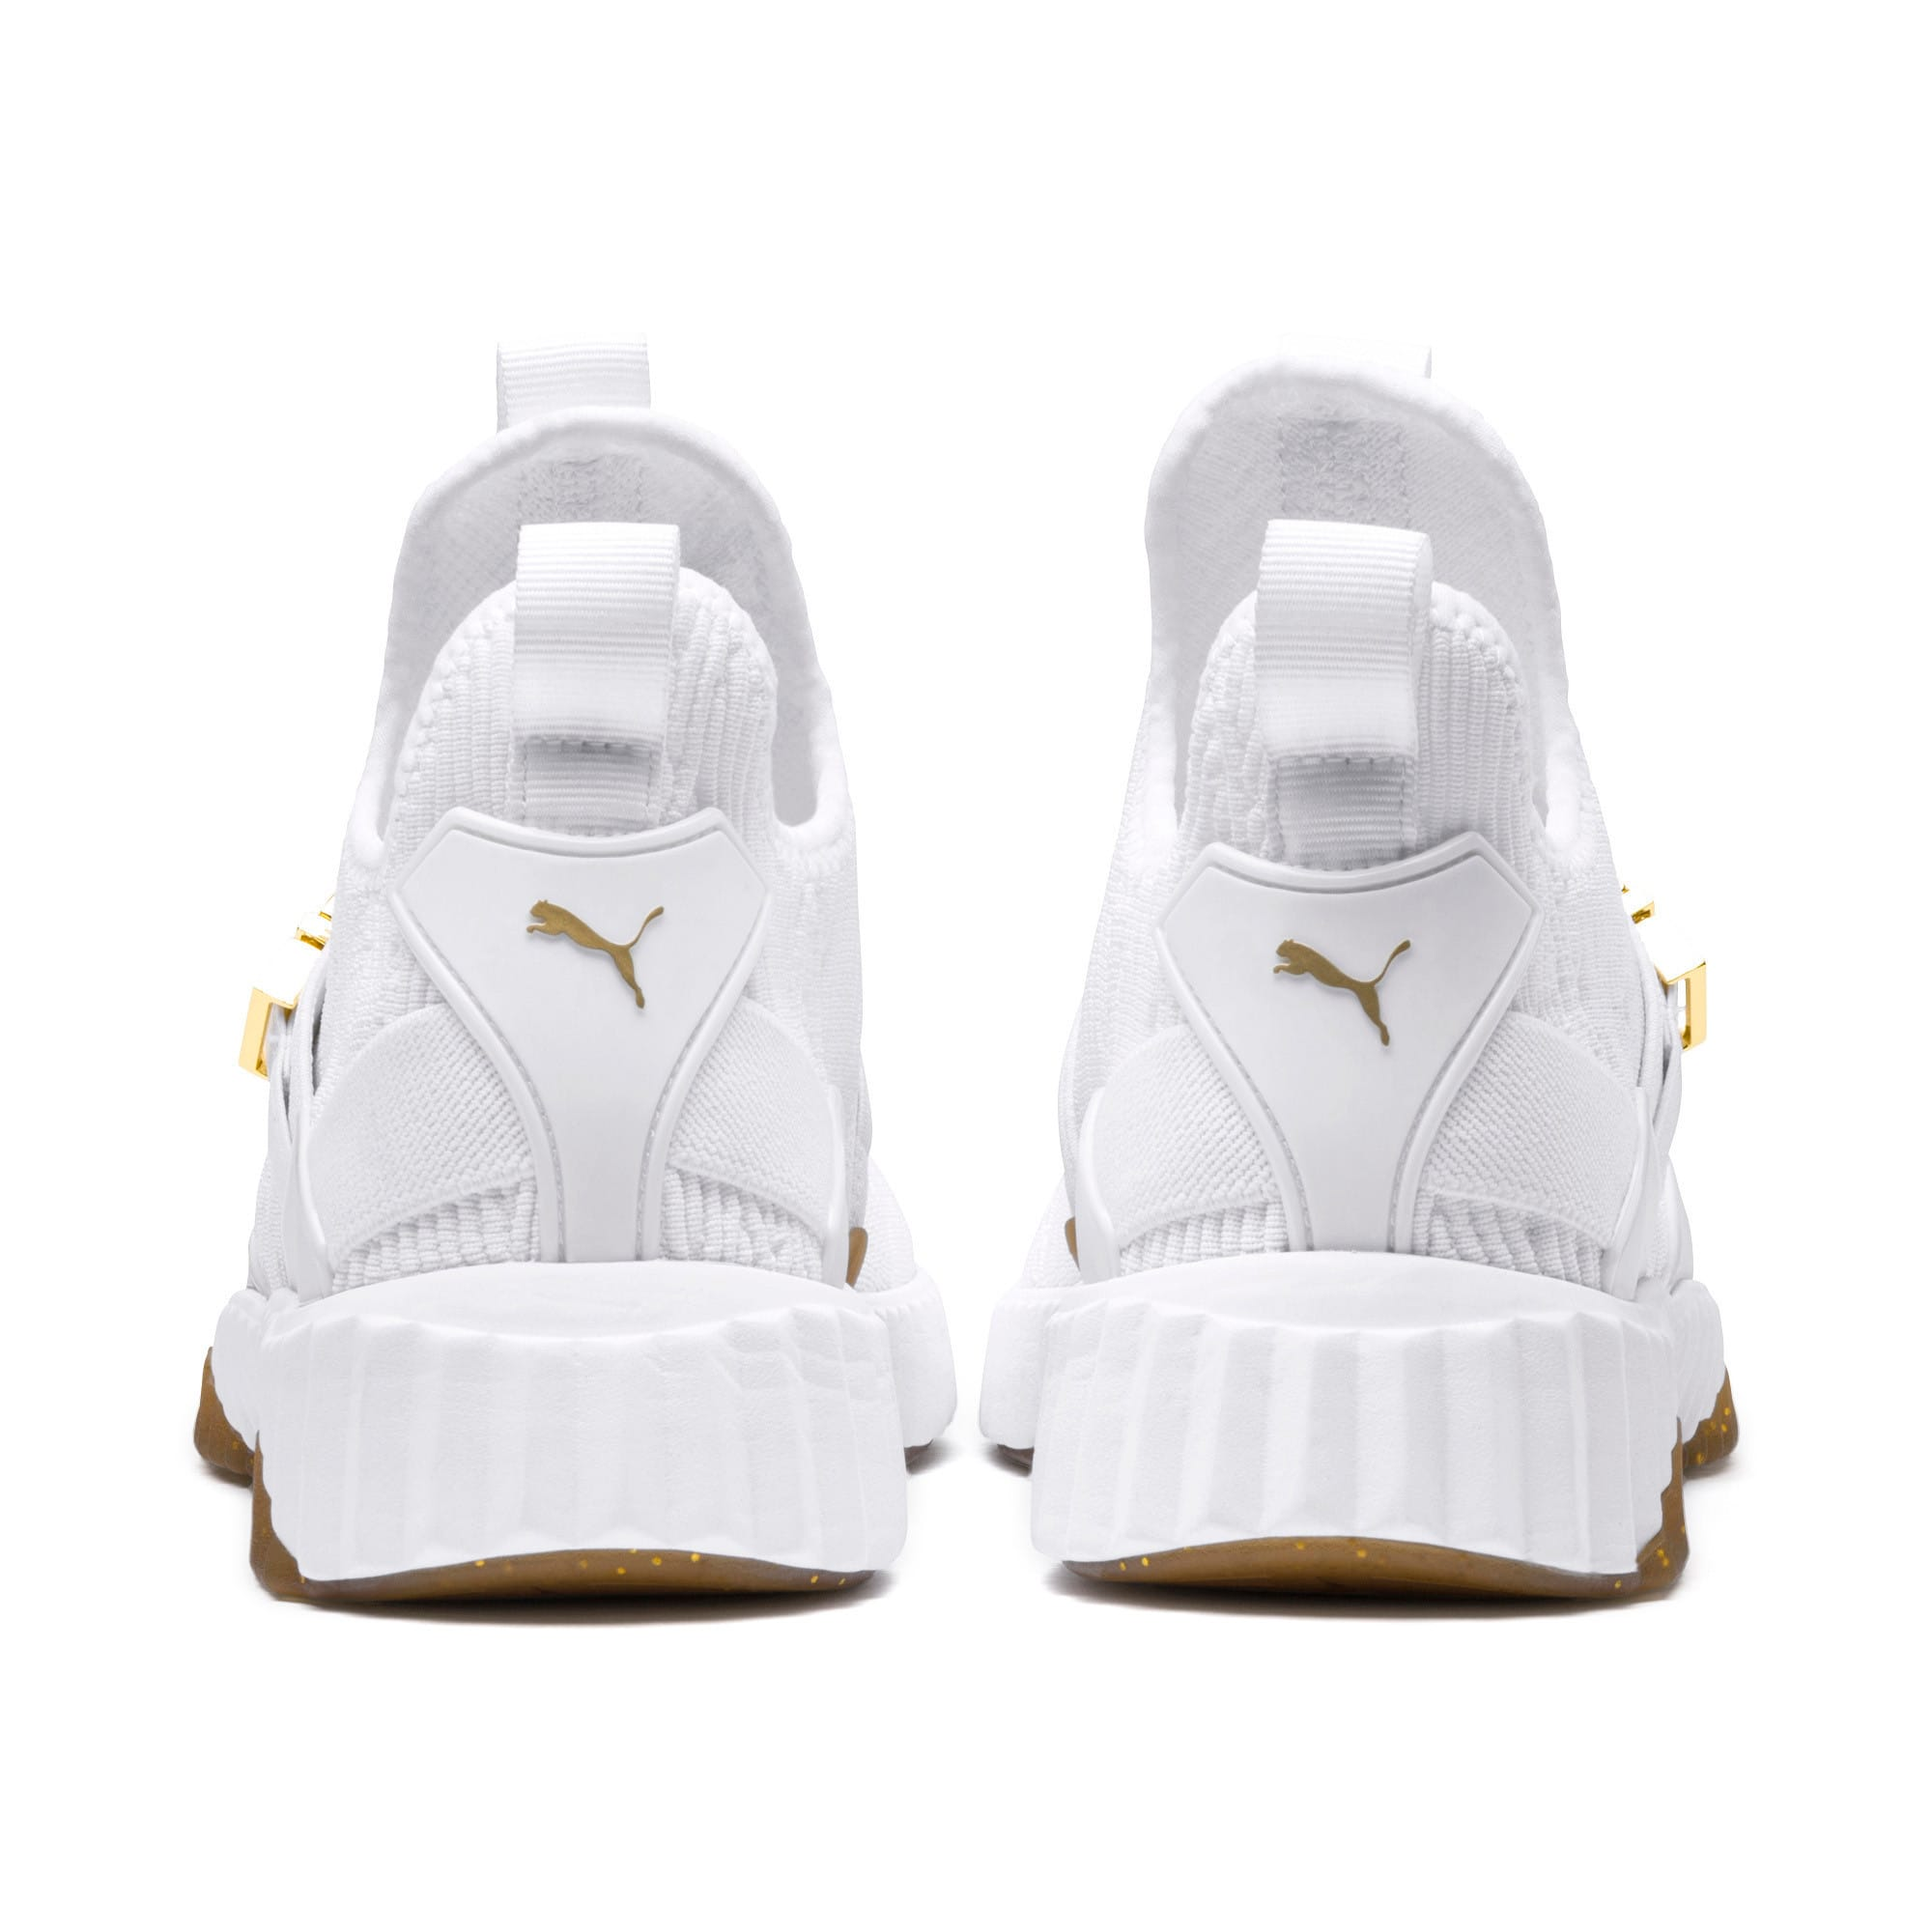 Thumbnail 5 of Defy Varsity Mid Women's Trainers, Puma White-Metallic Gold, medium-IND